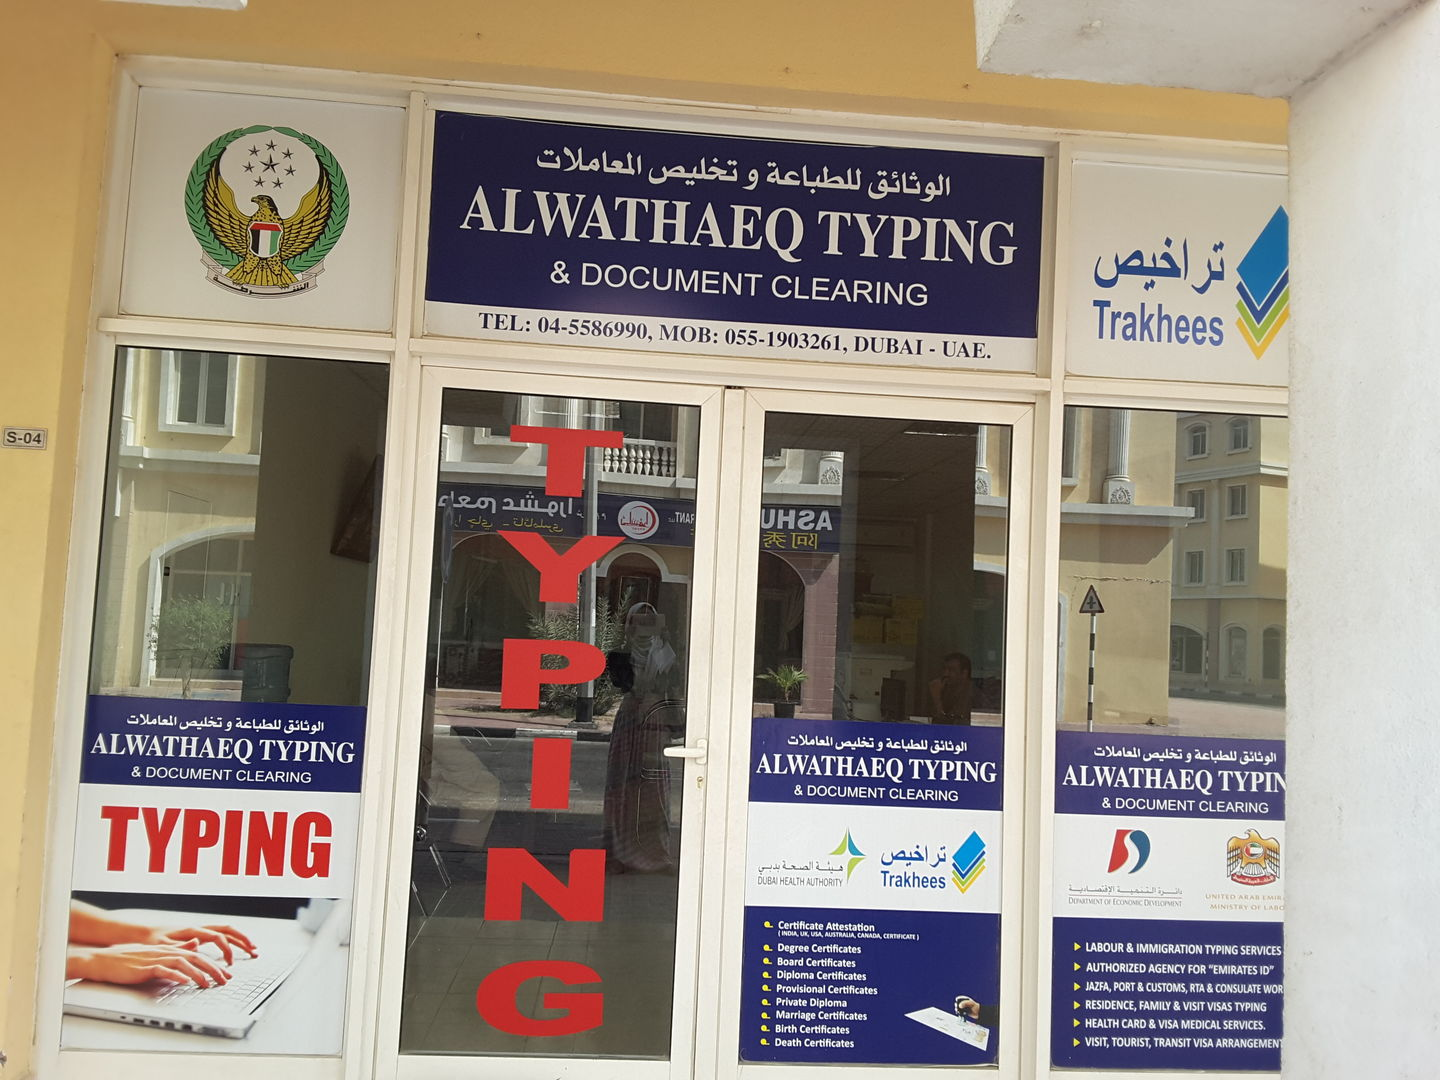 HiDubai-business-alwathaeq-typing-document-clearing-government-public-services-printing-typing-services-international-city-warsan-1-dubai-2